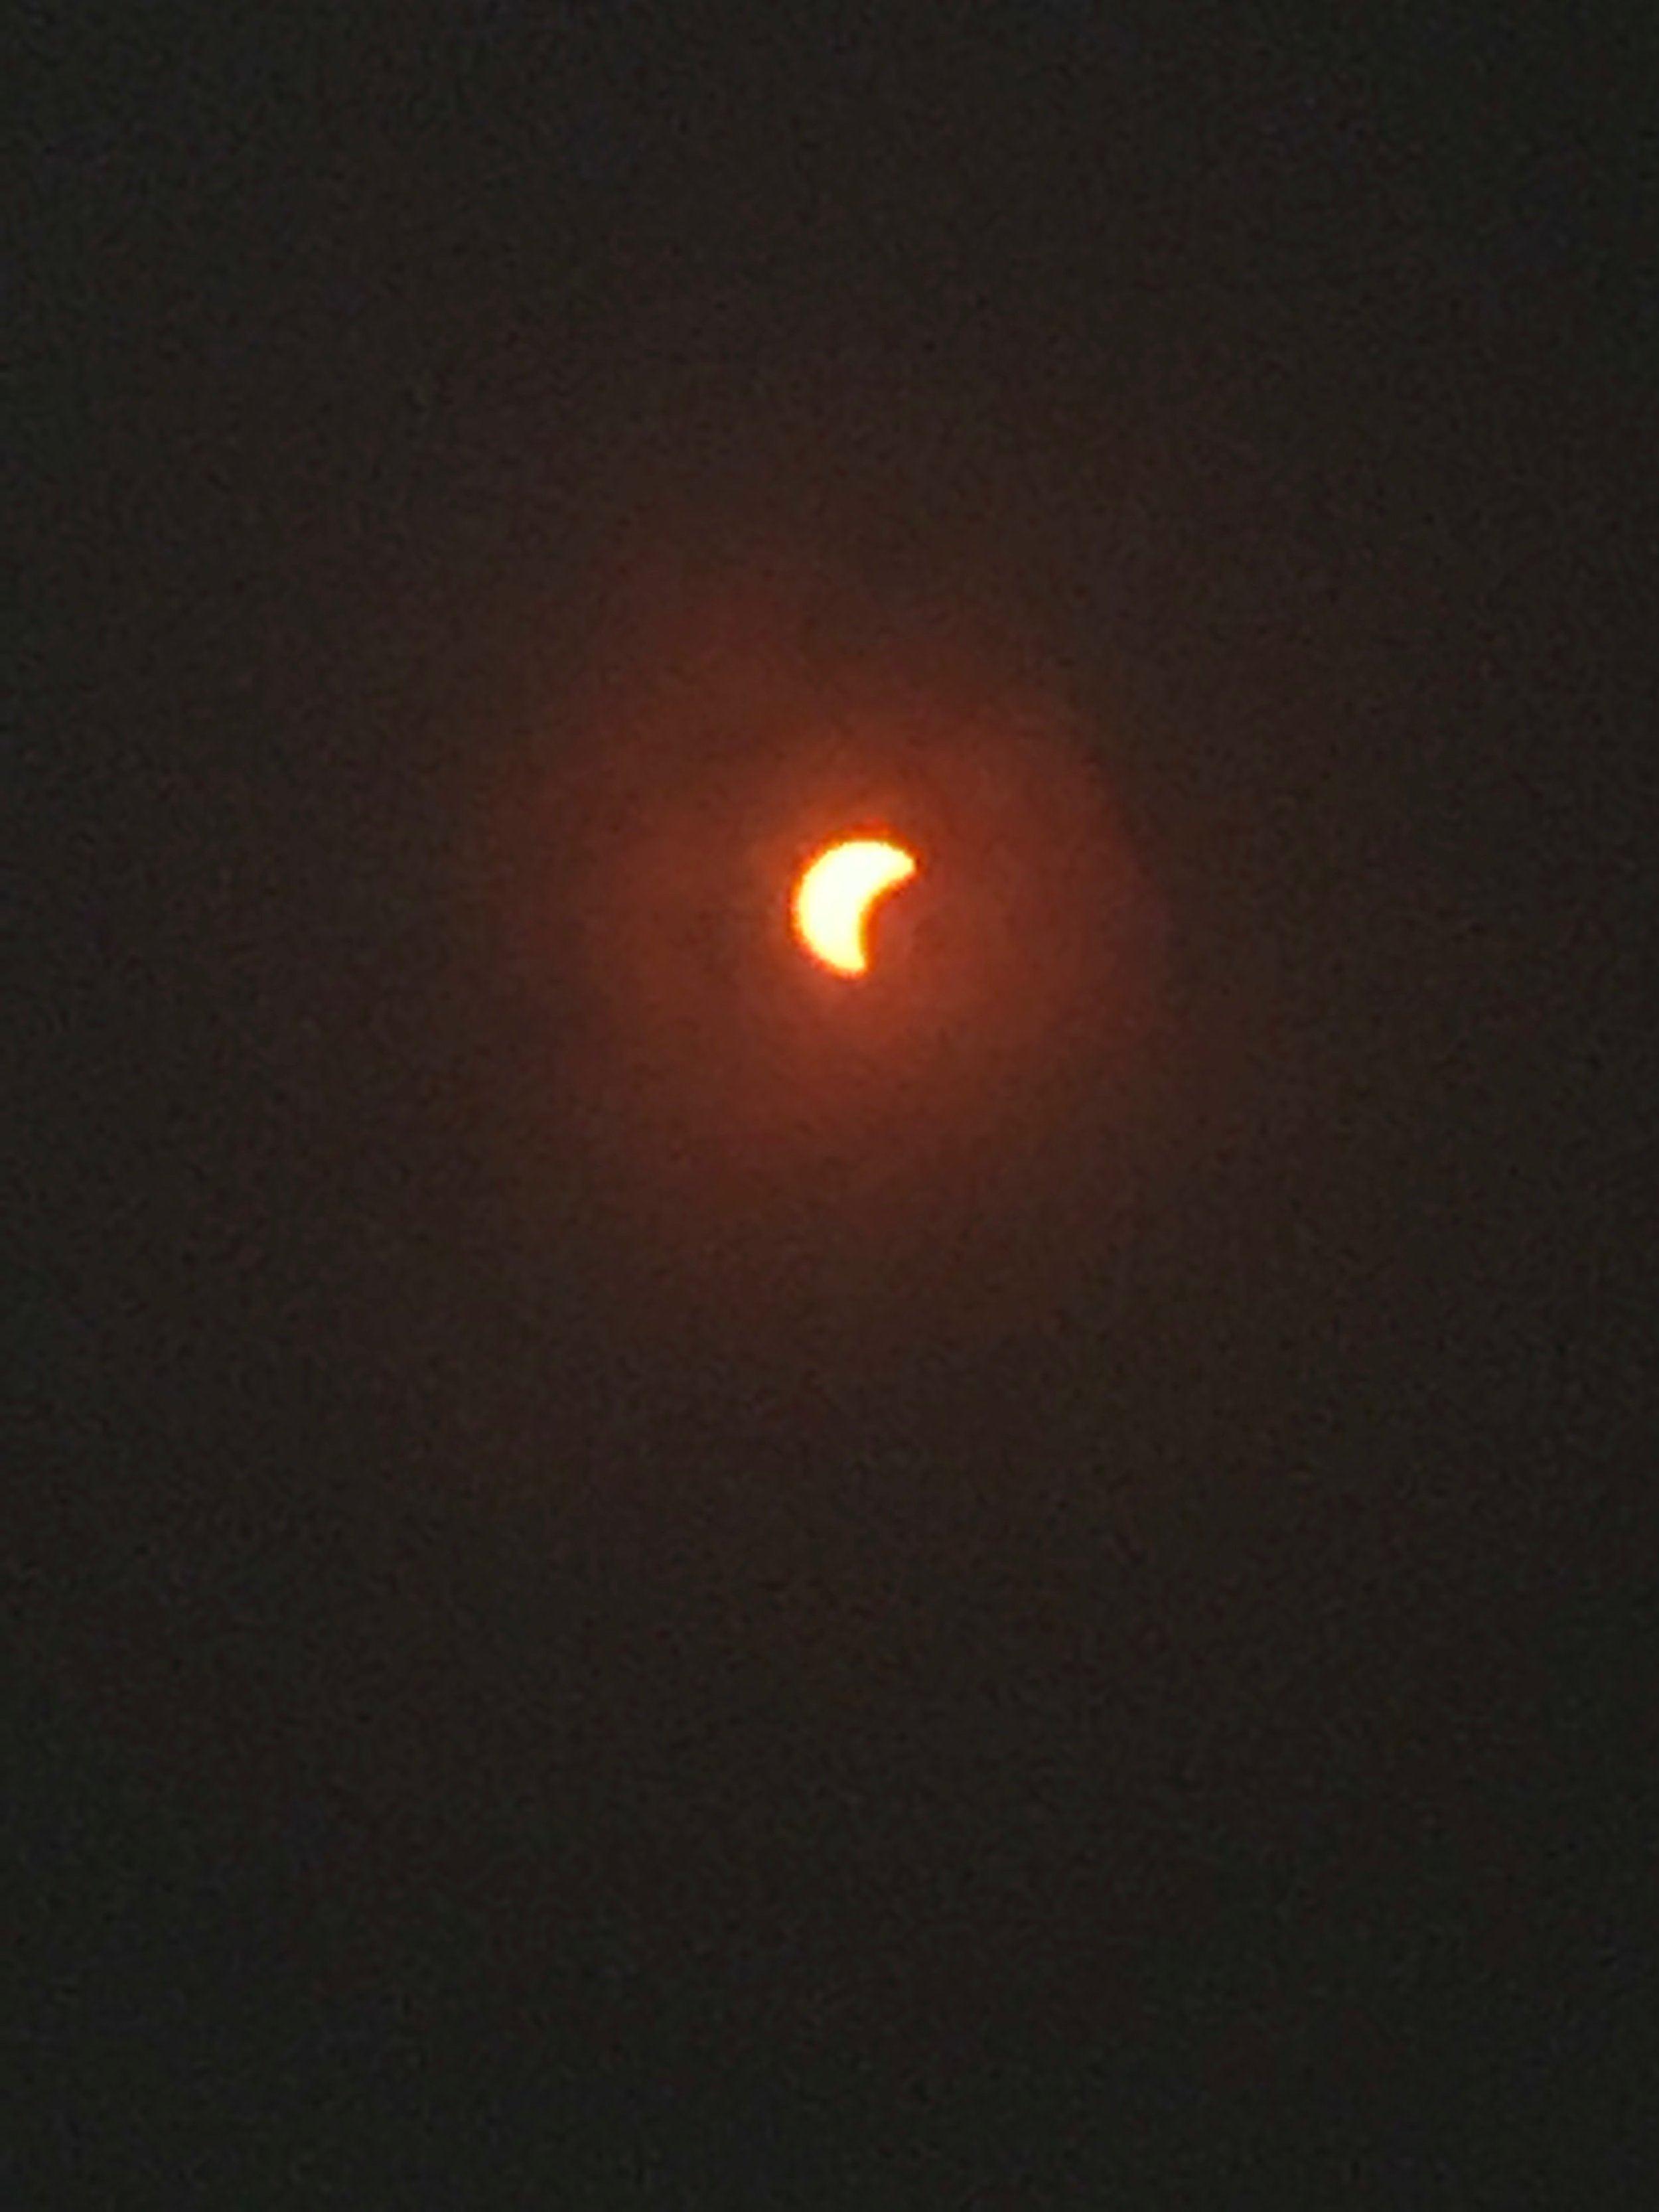 Photo of the eclipse taken at UVI field by PGIA 8th grade student Vidhika .